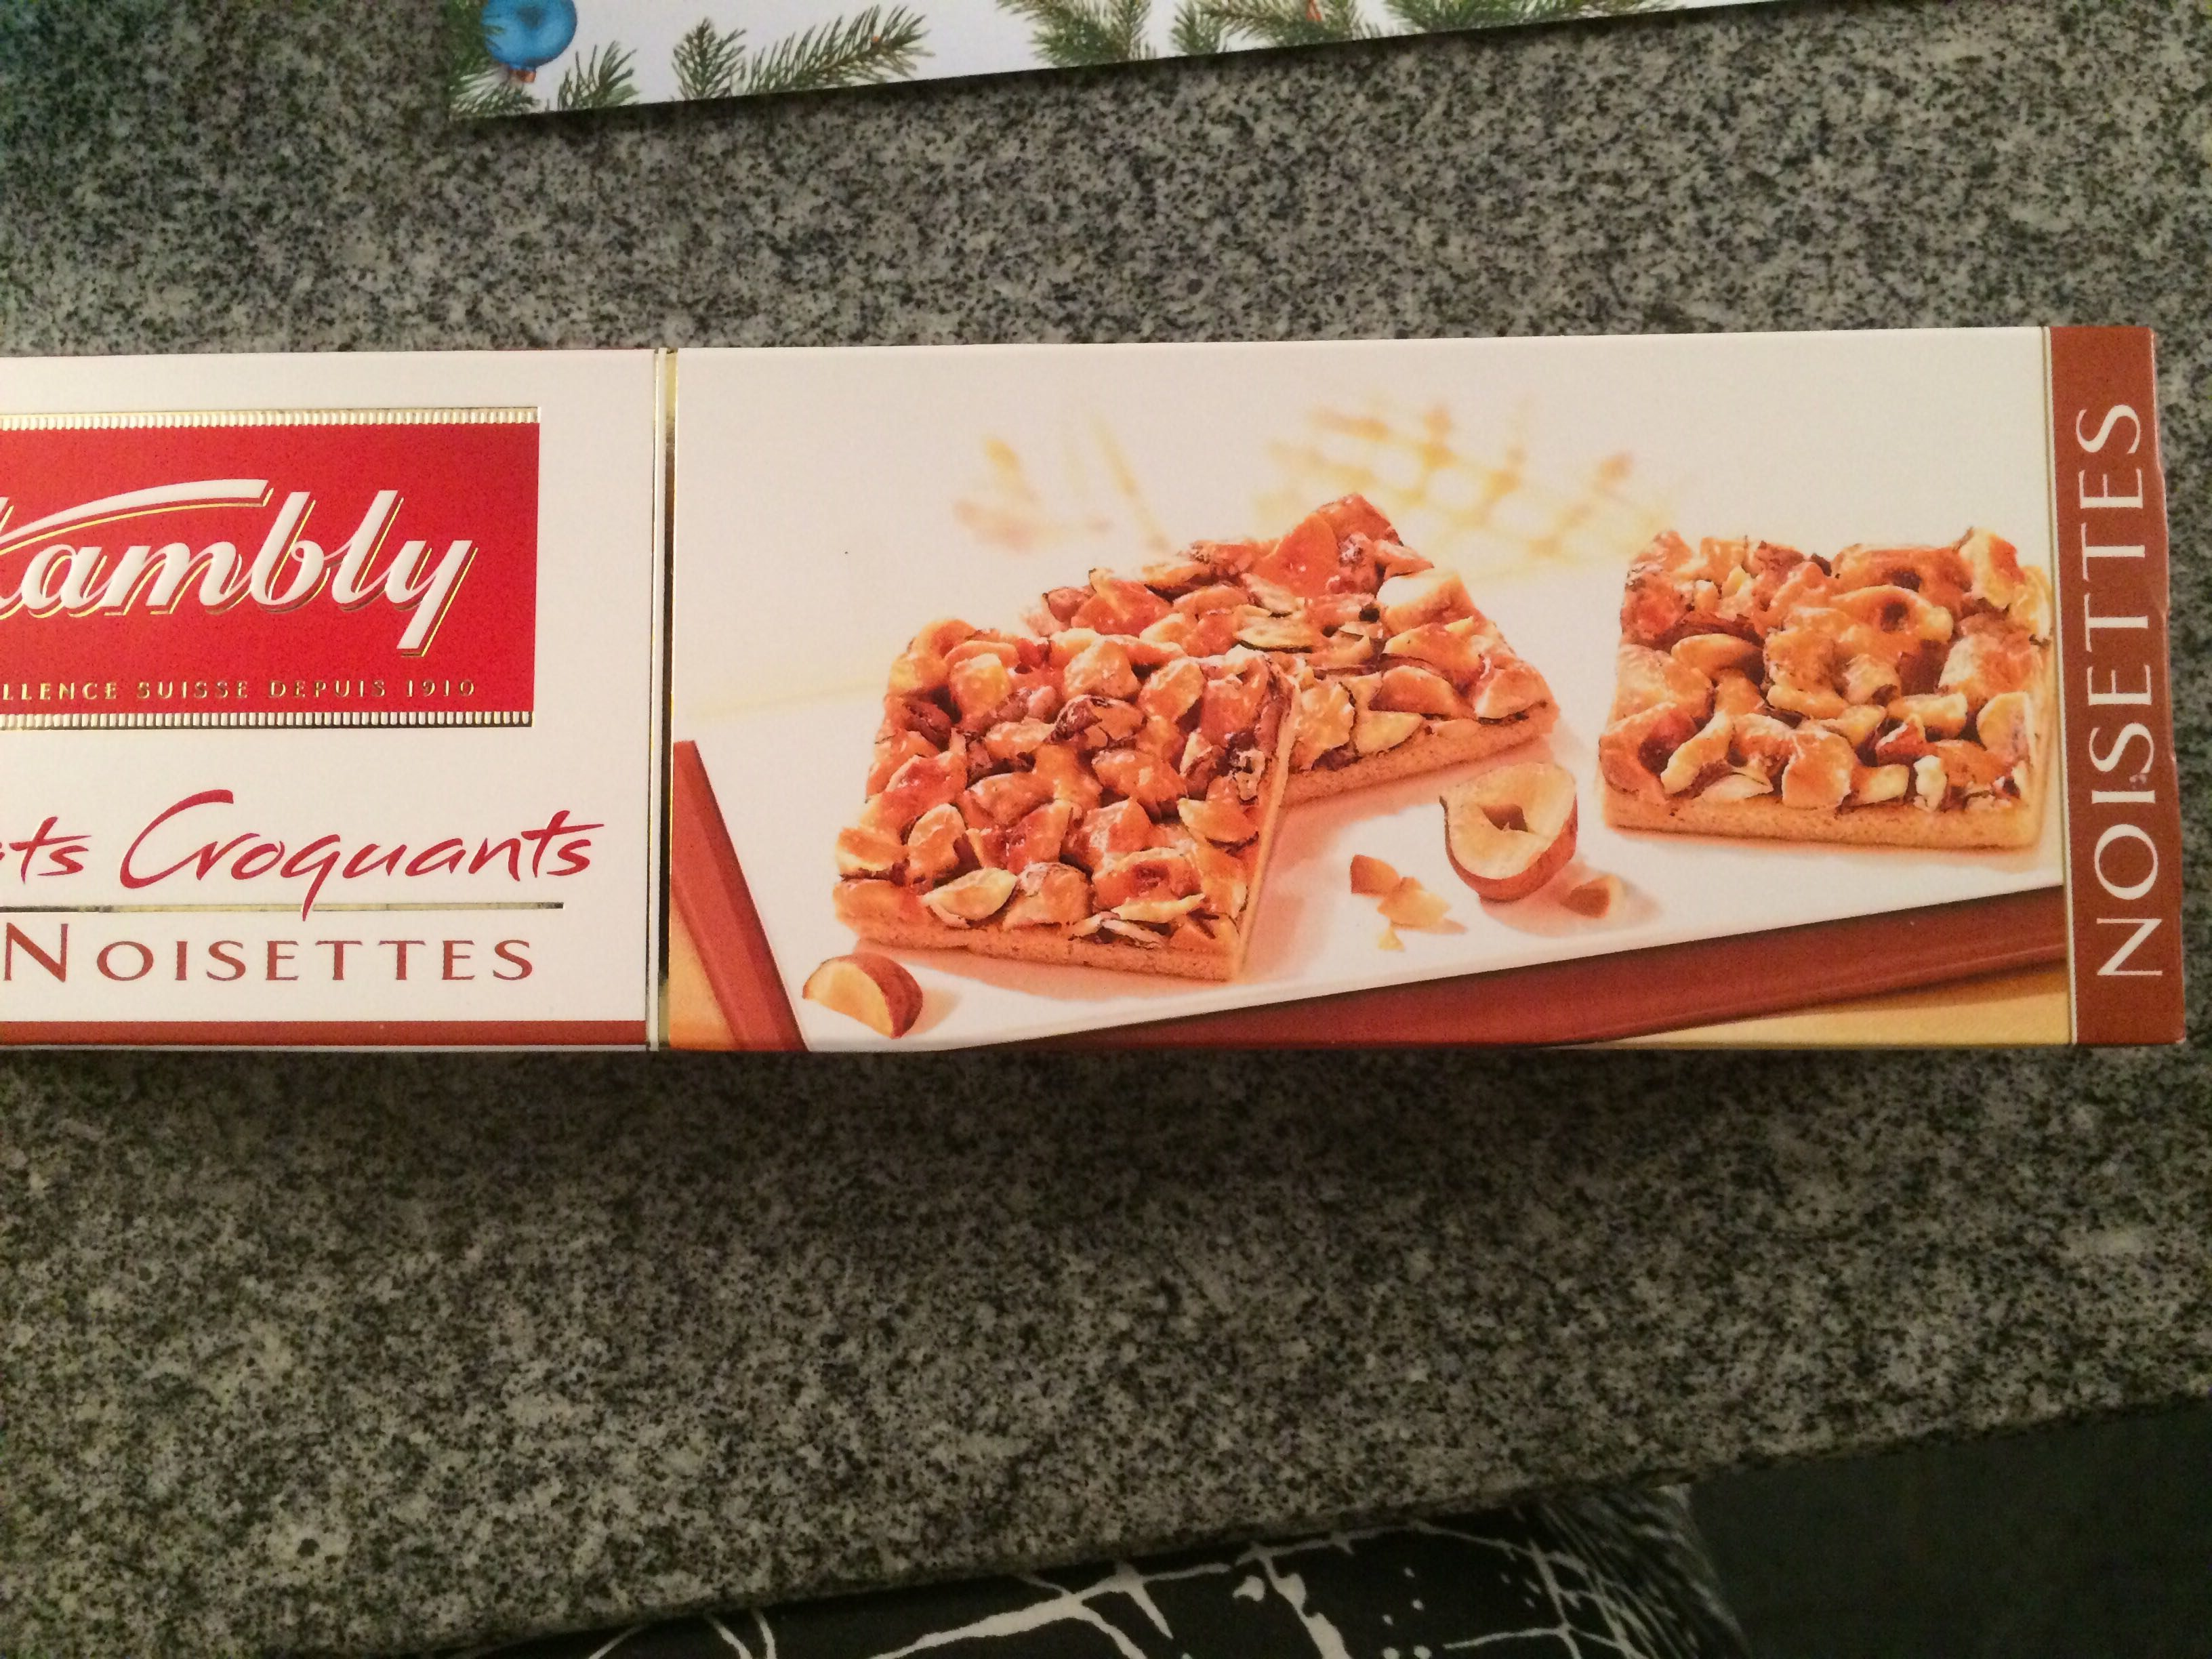 Kambly Biscuits With Caramel Almond Hazelnut - Product